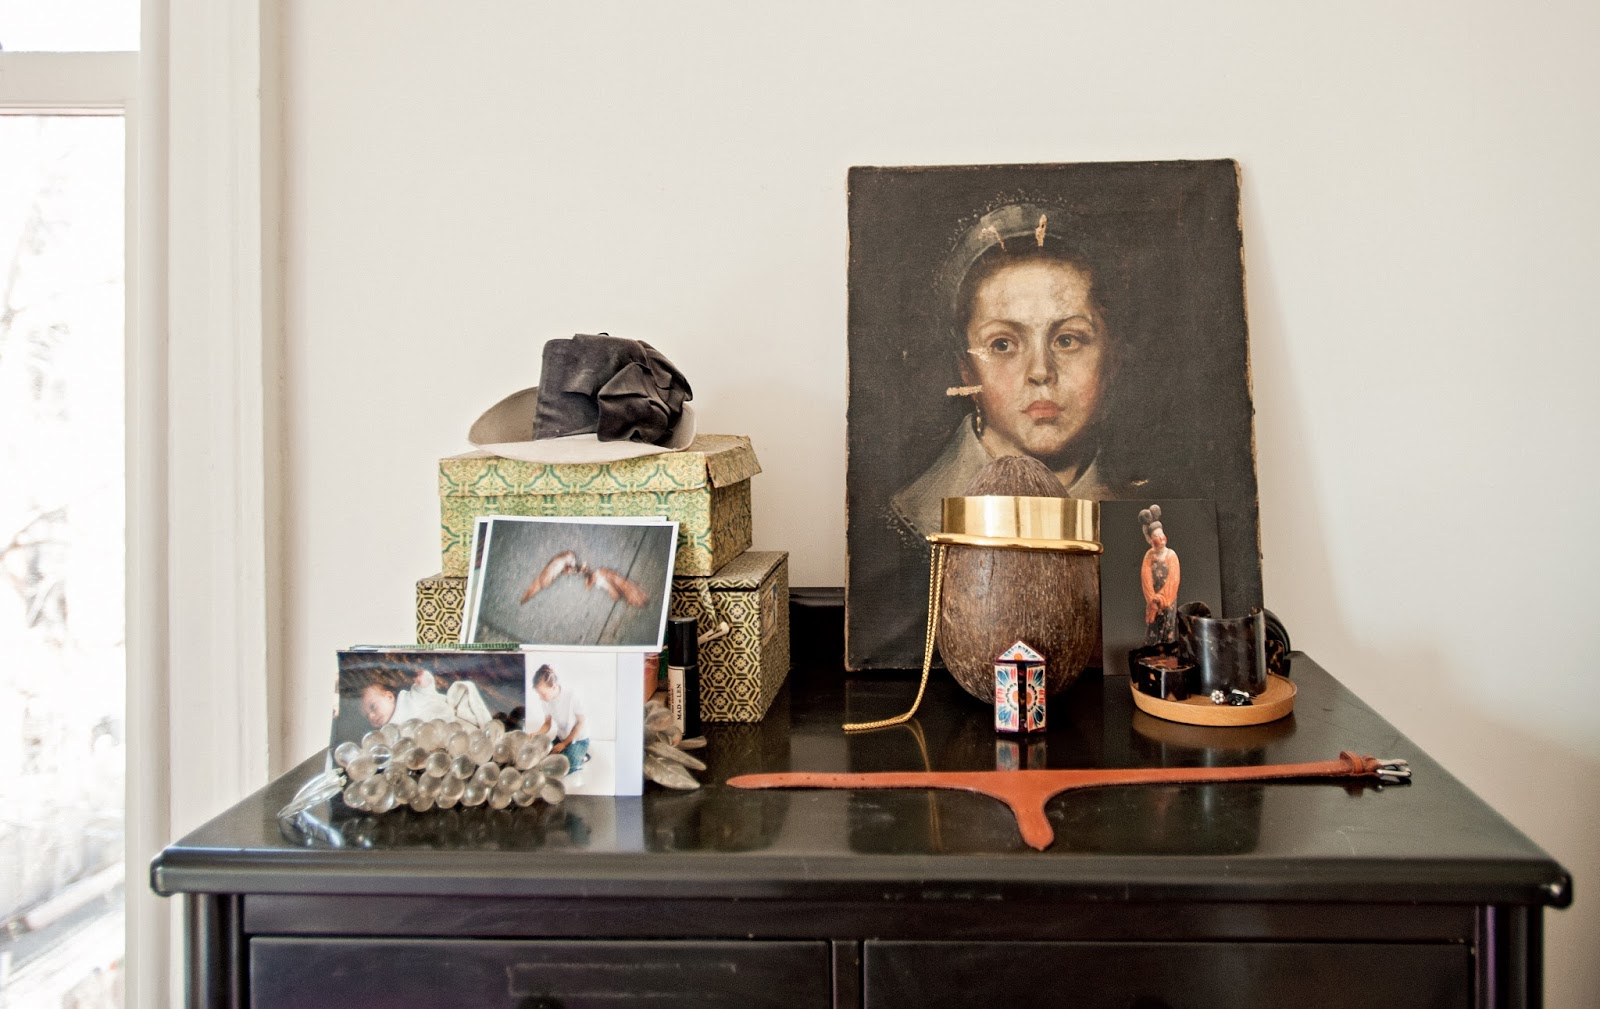 Brooklyn interiors, House of designer Mona Kowalska